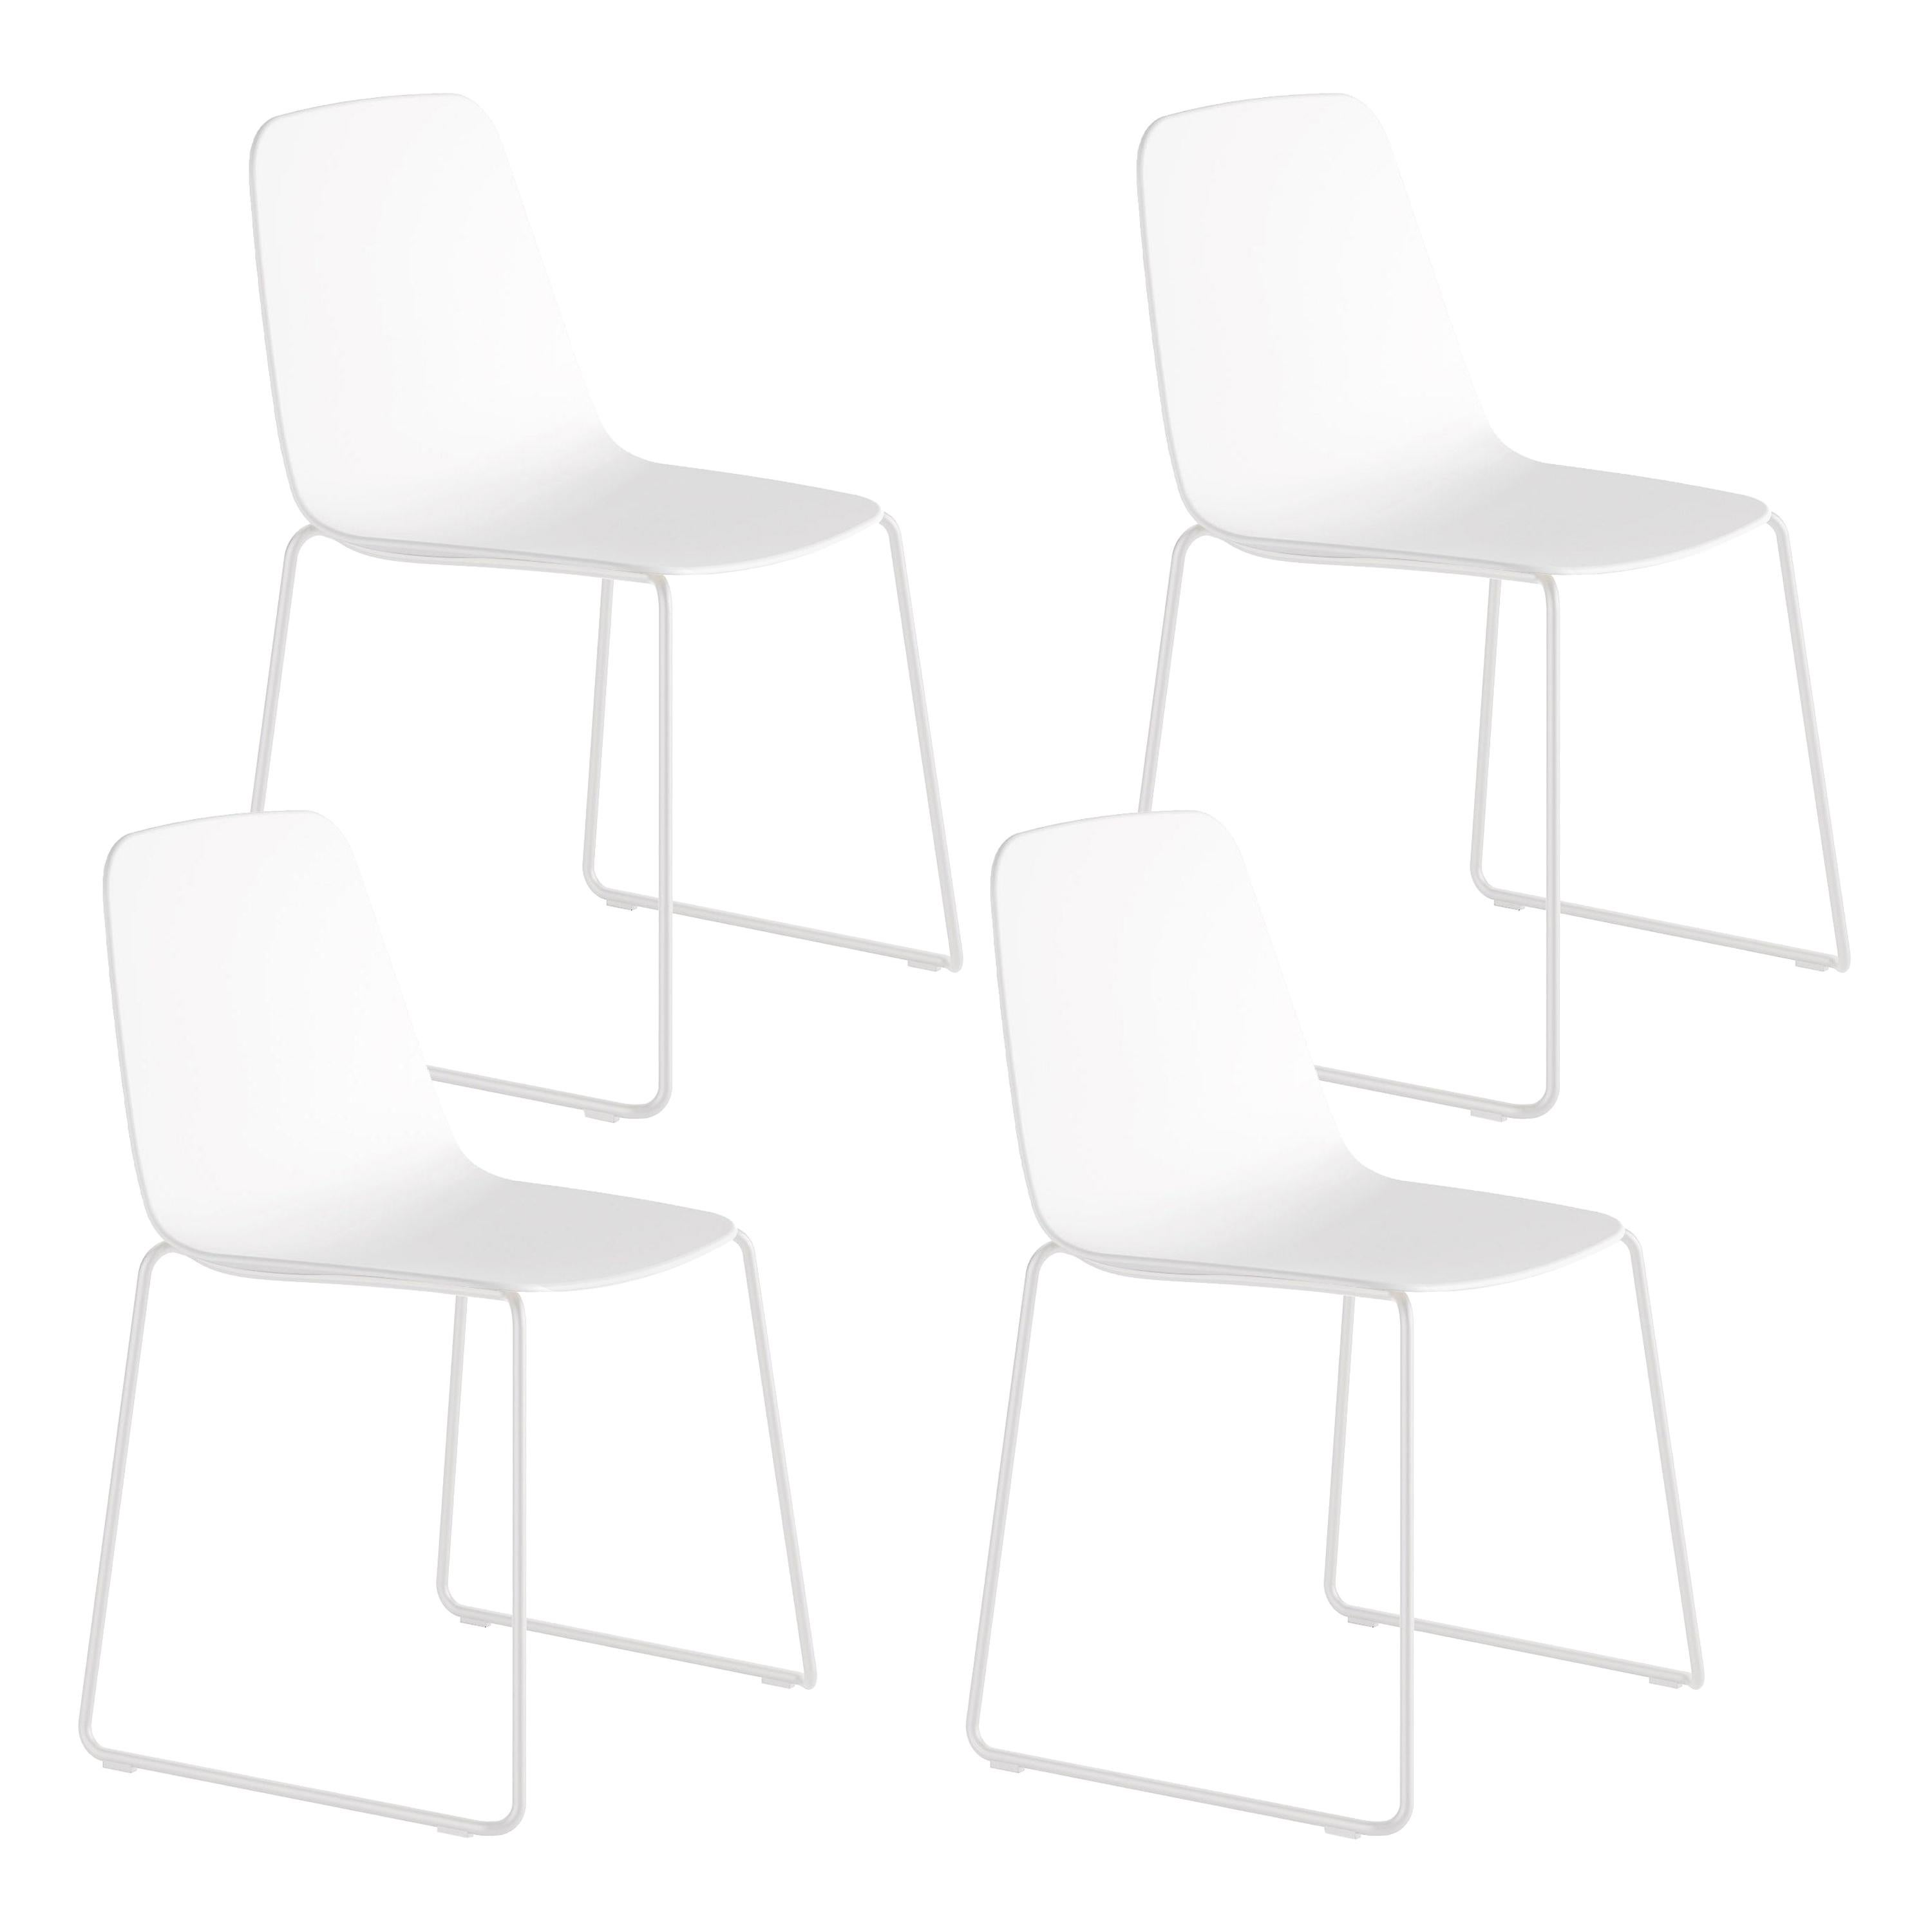 Viccarbe Set 4 Maarten Plastic Chair, Sled Base, White  , by Víctor Carrasco